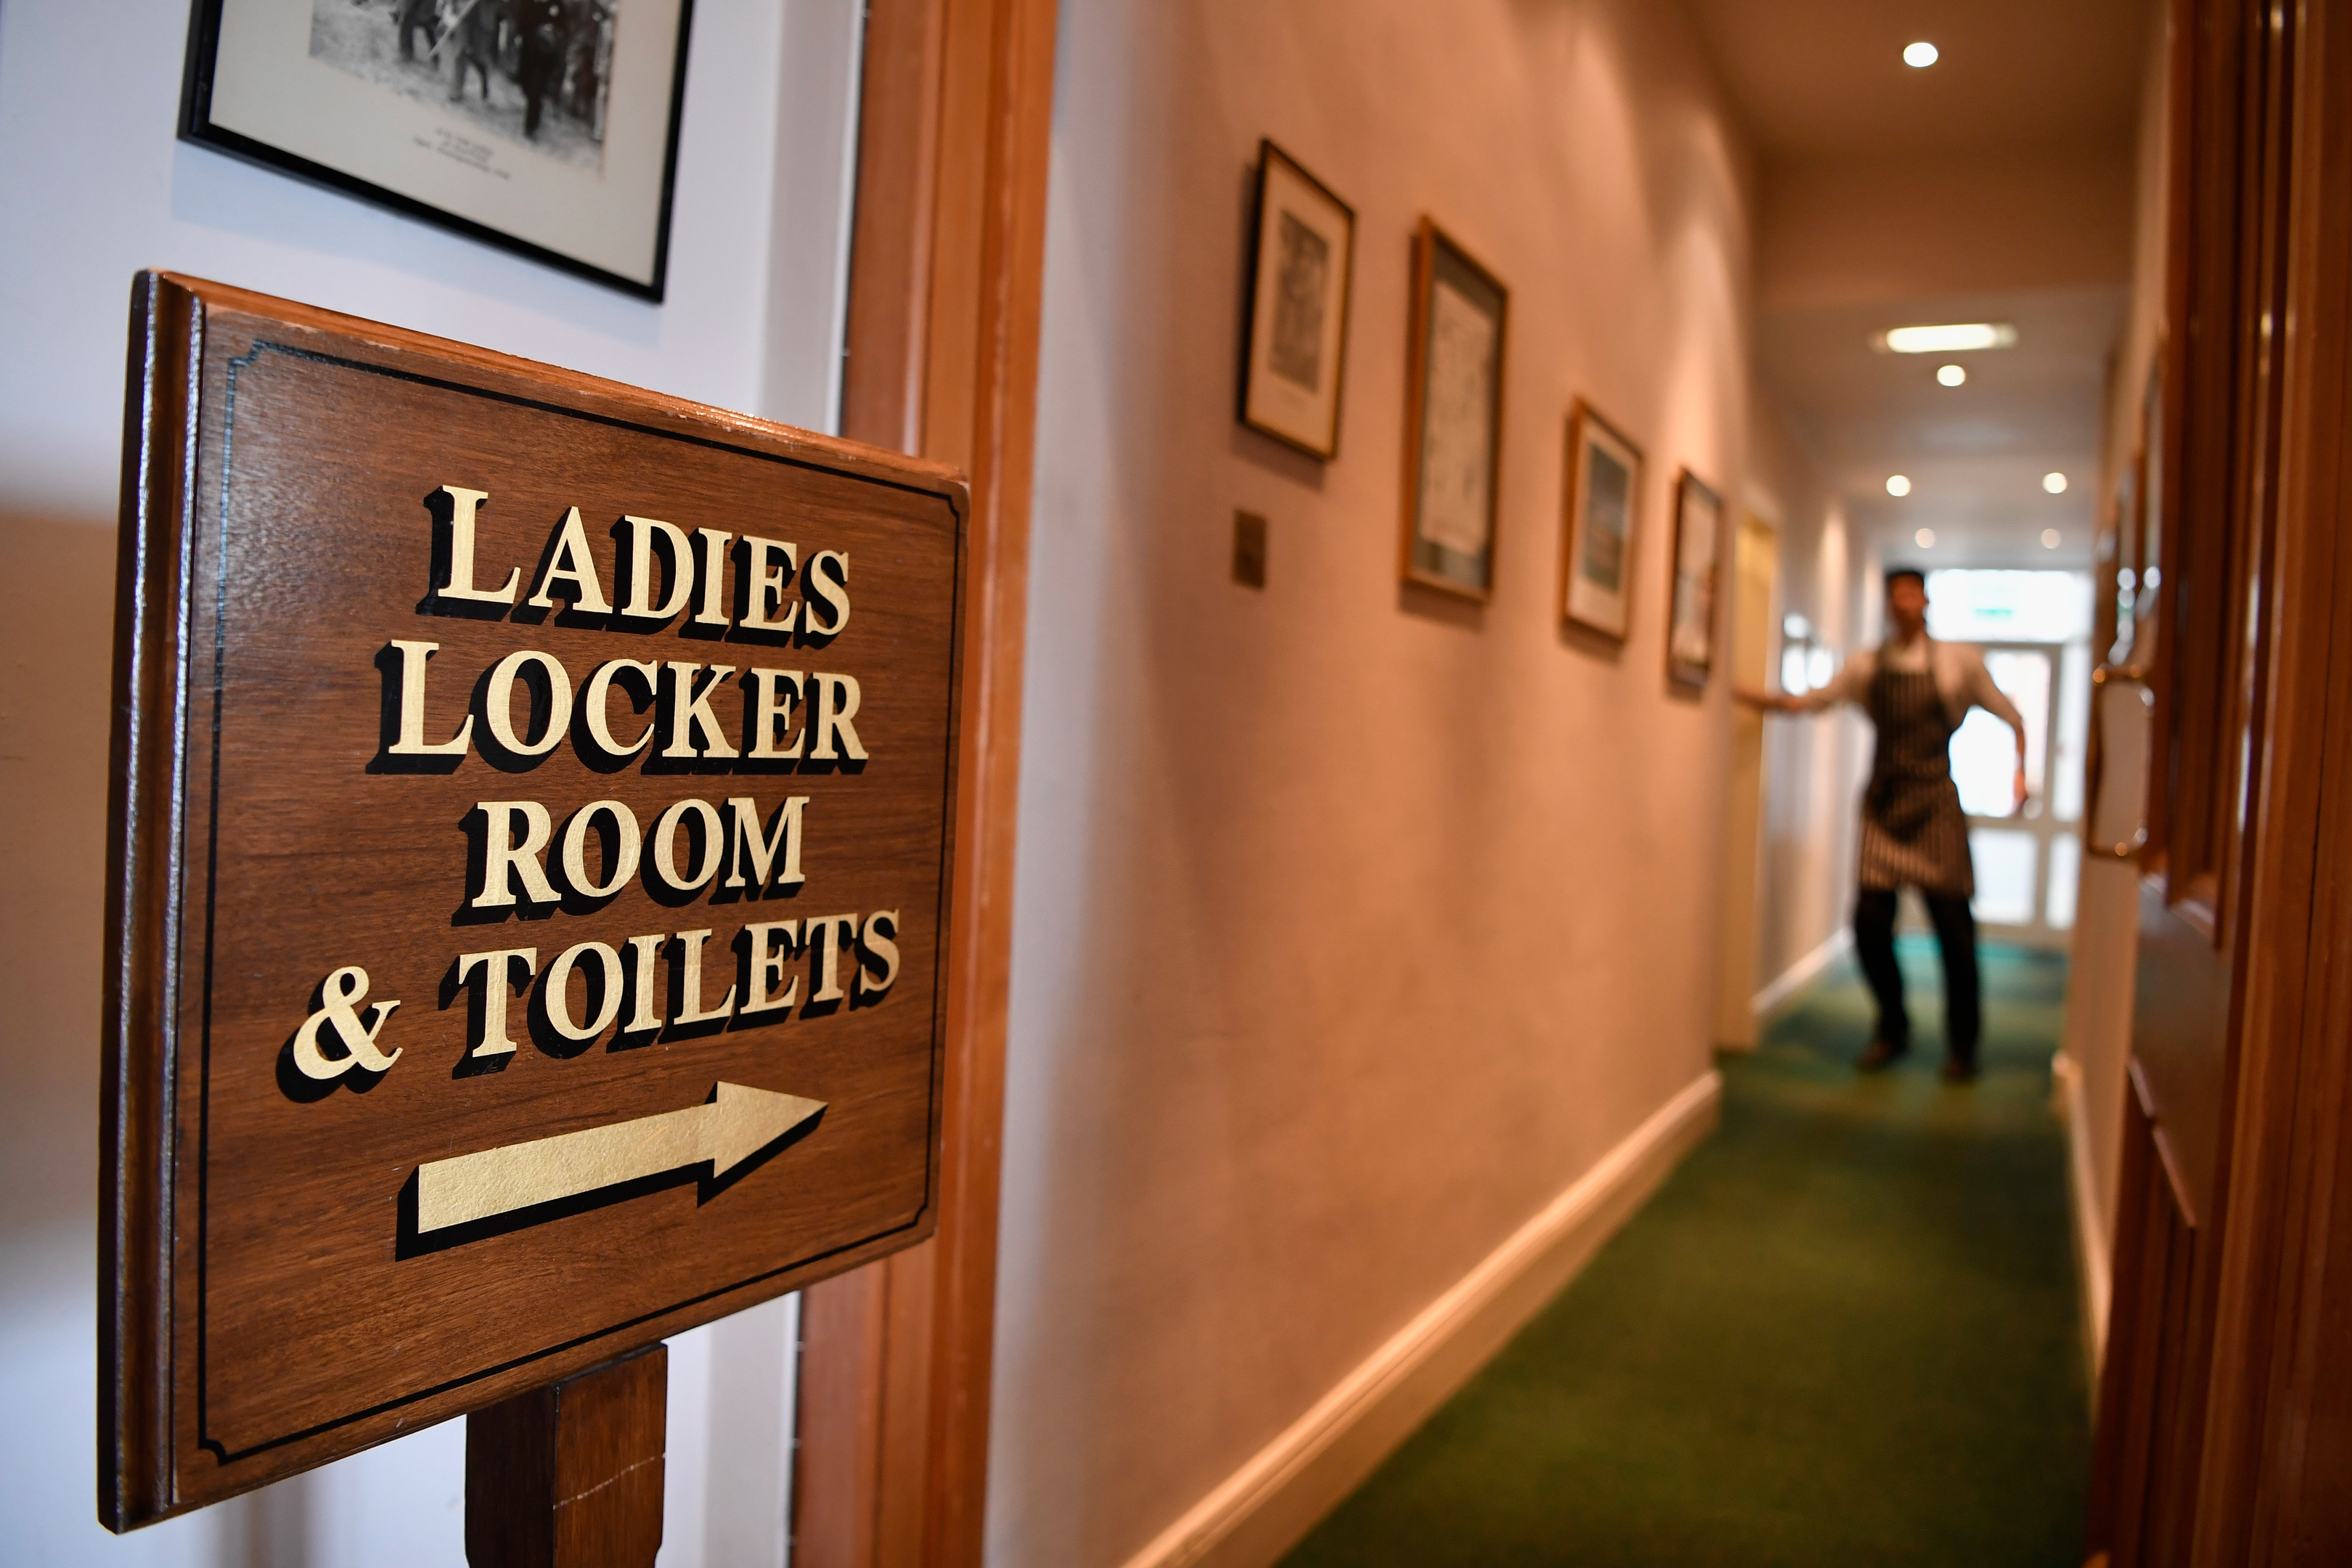 Directions to the ladies' locker room within the clubhouse of the Honourable Company of Edinburgh Golfers at Muirfield.